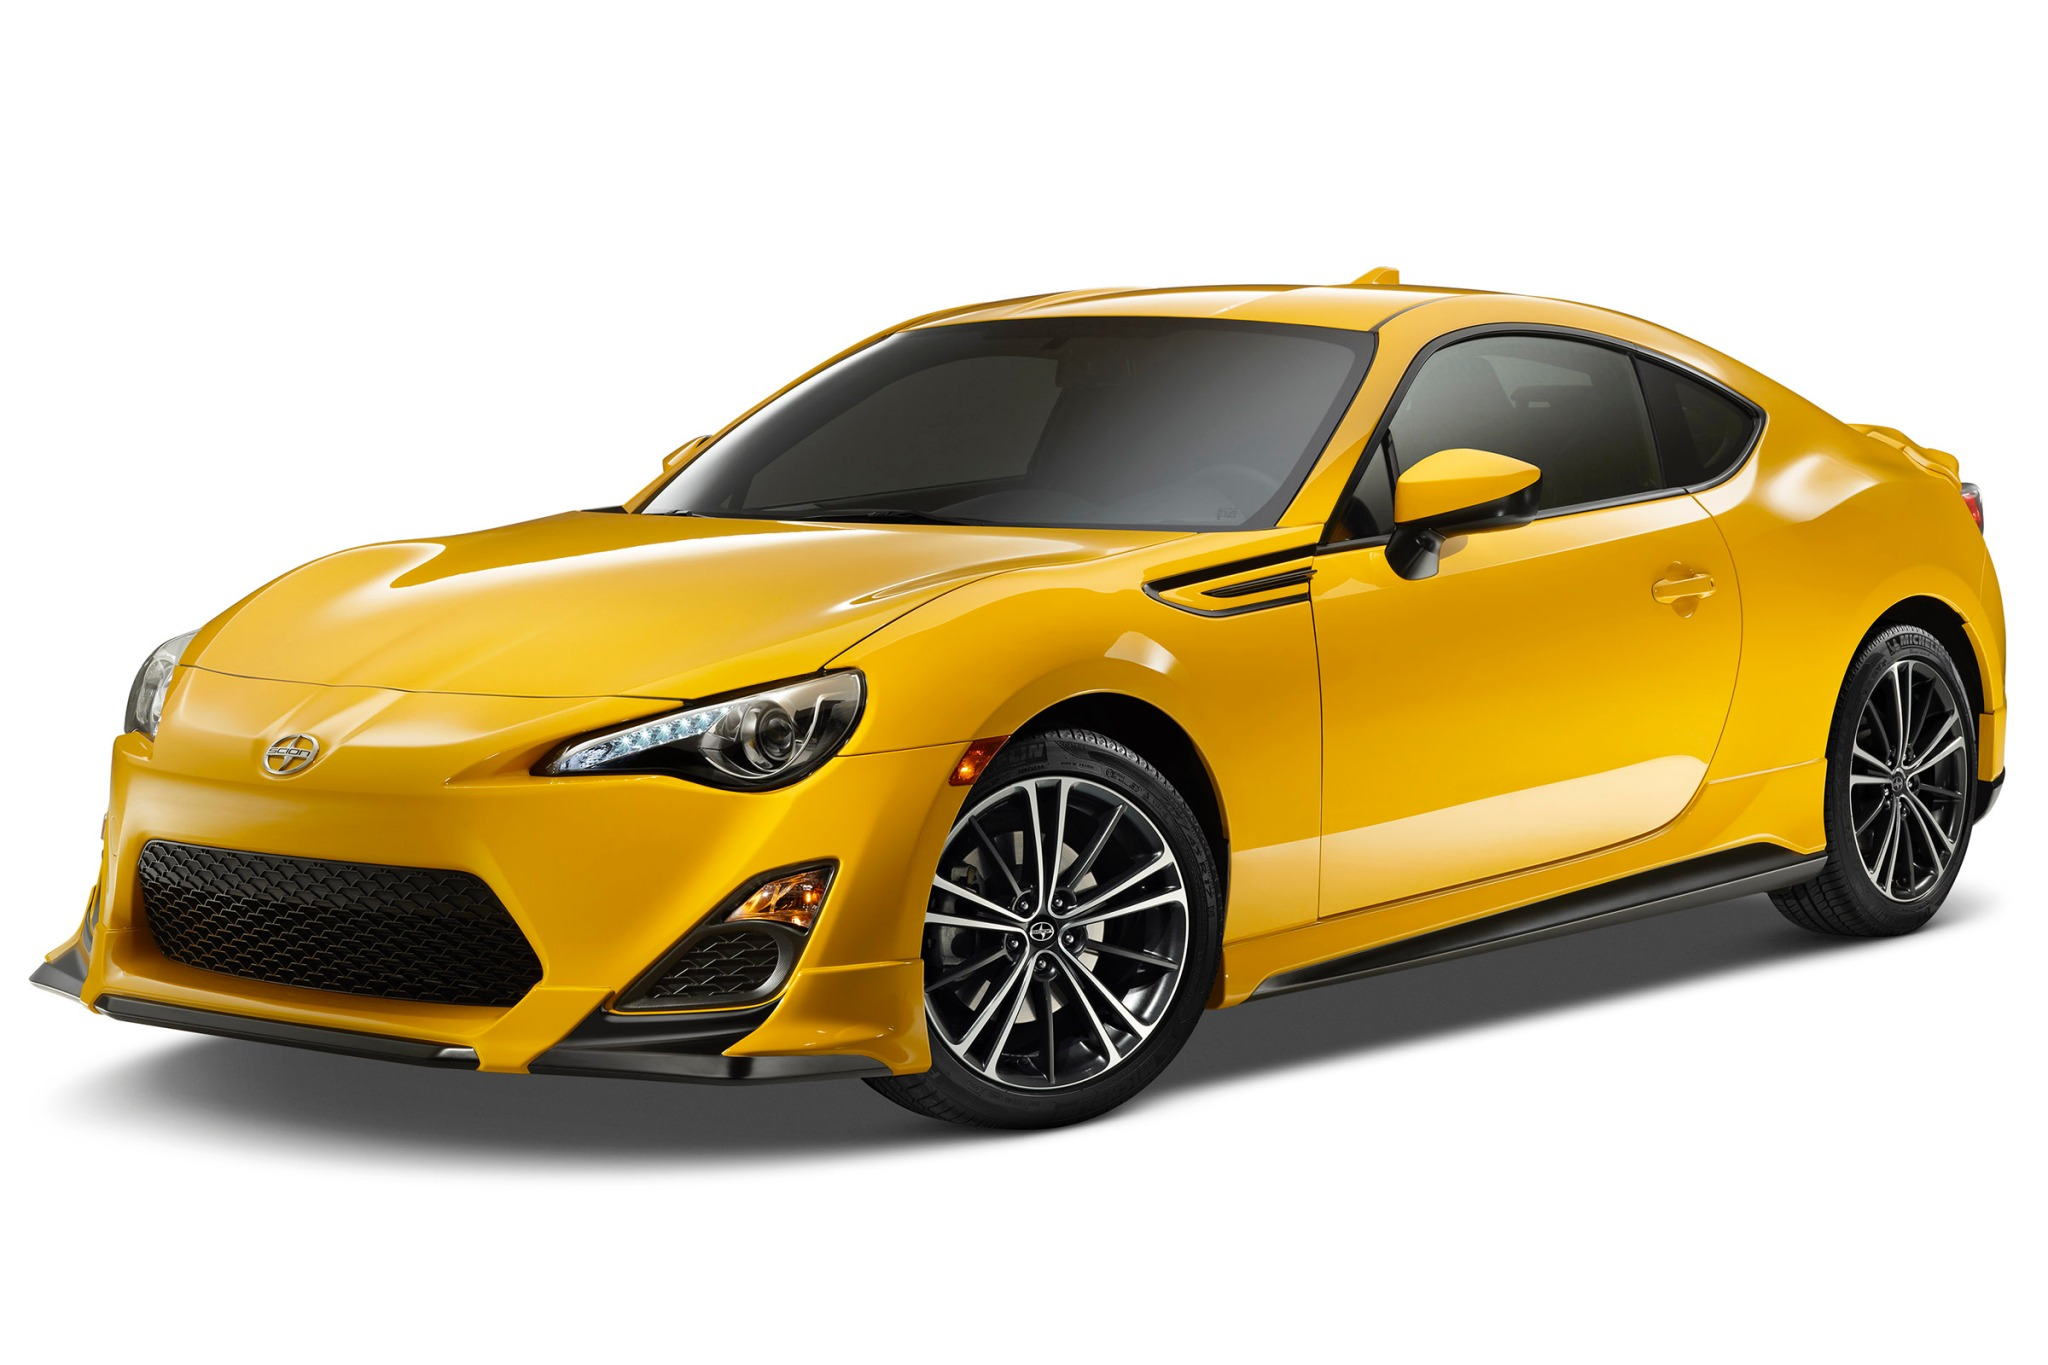 2015 scion fr s coupe release series 10 fq oem 1 2048